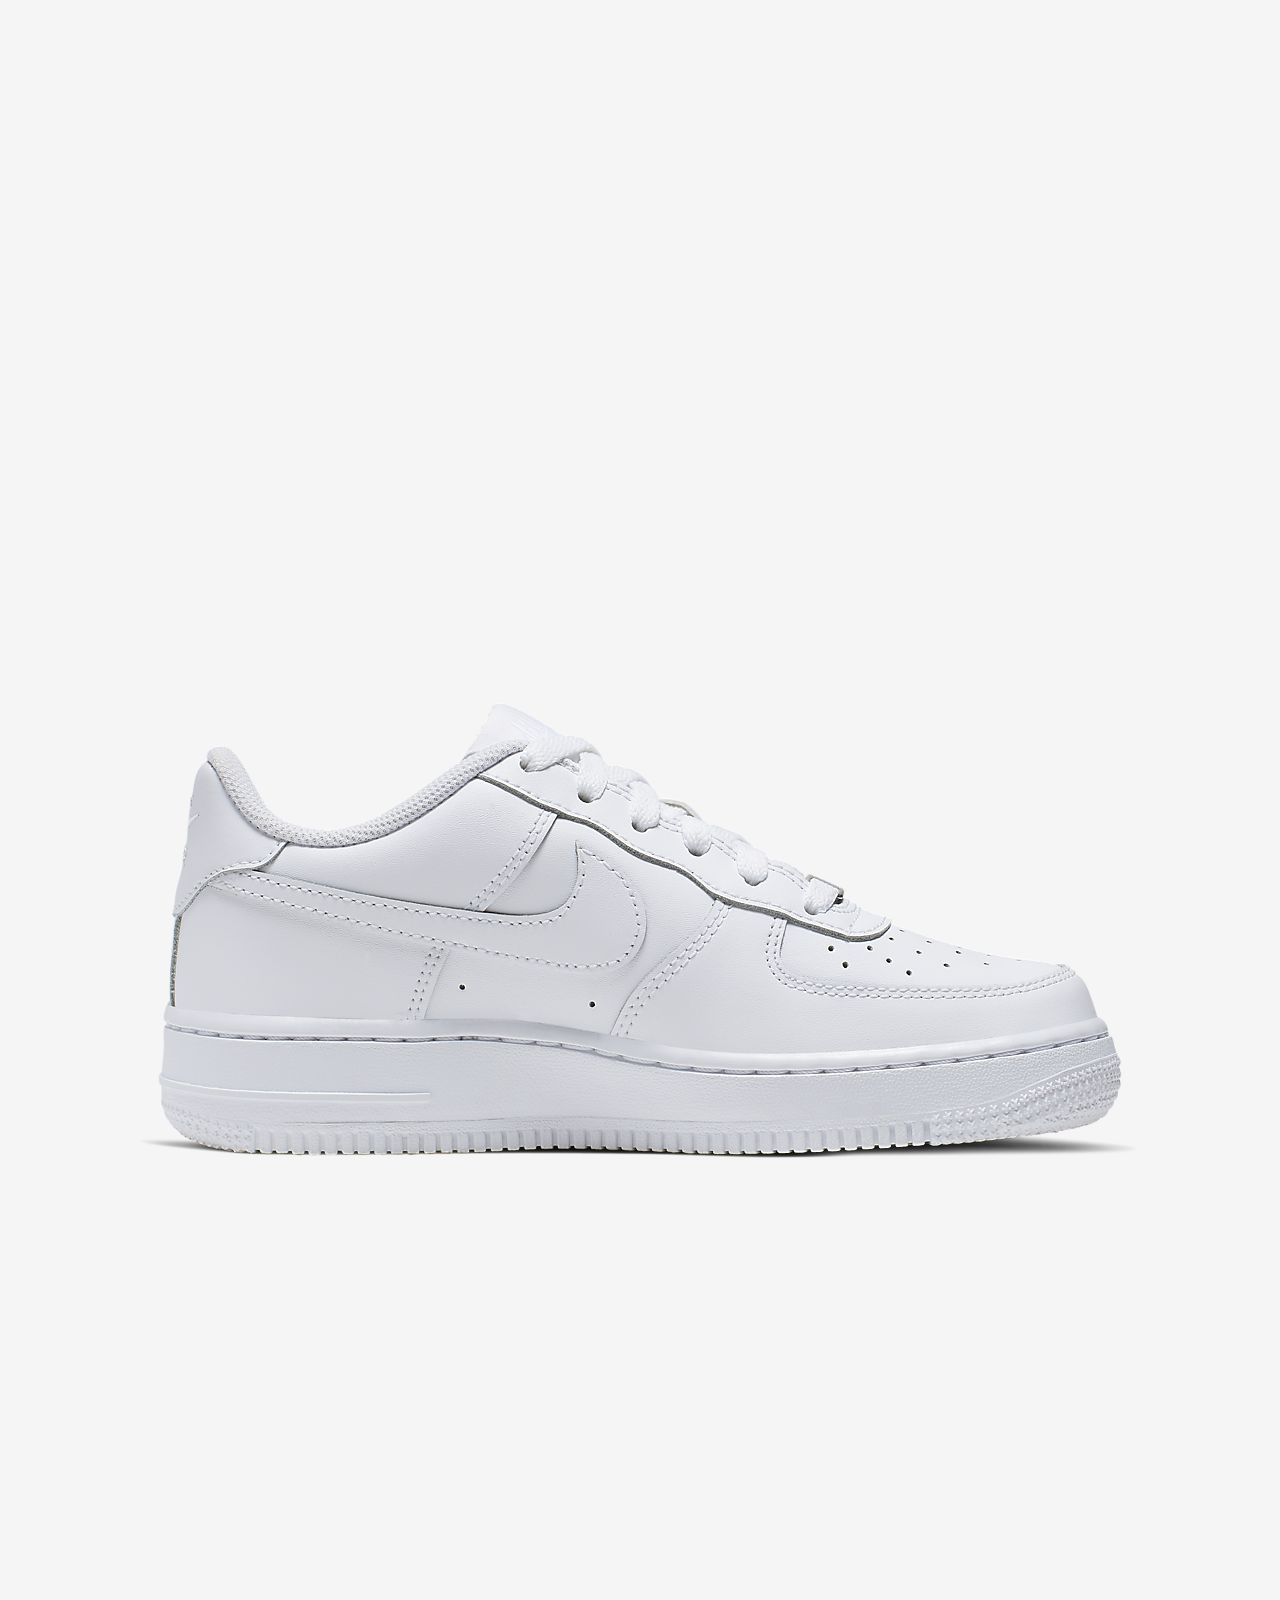 nike air force 1 patent nz